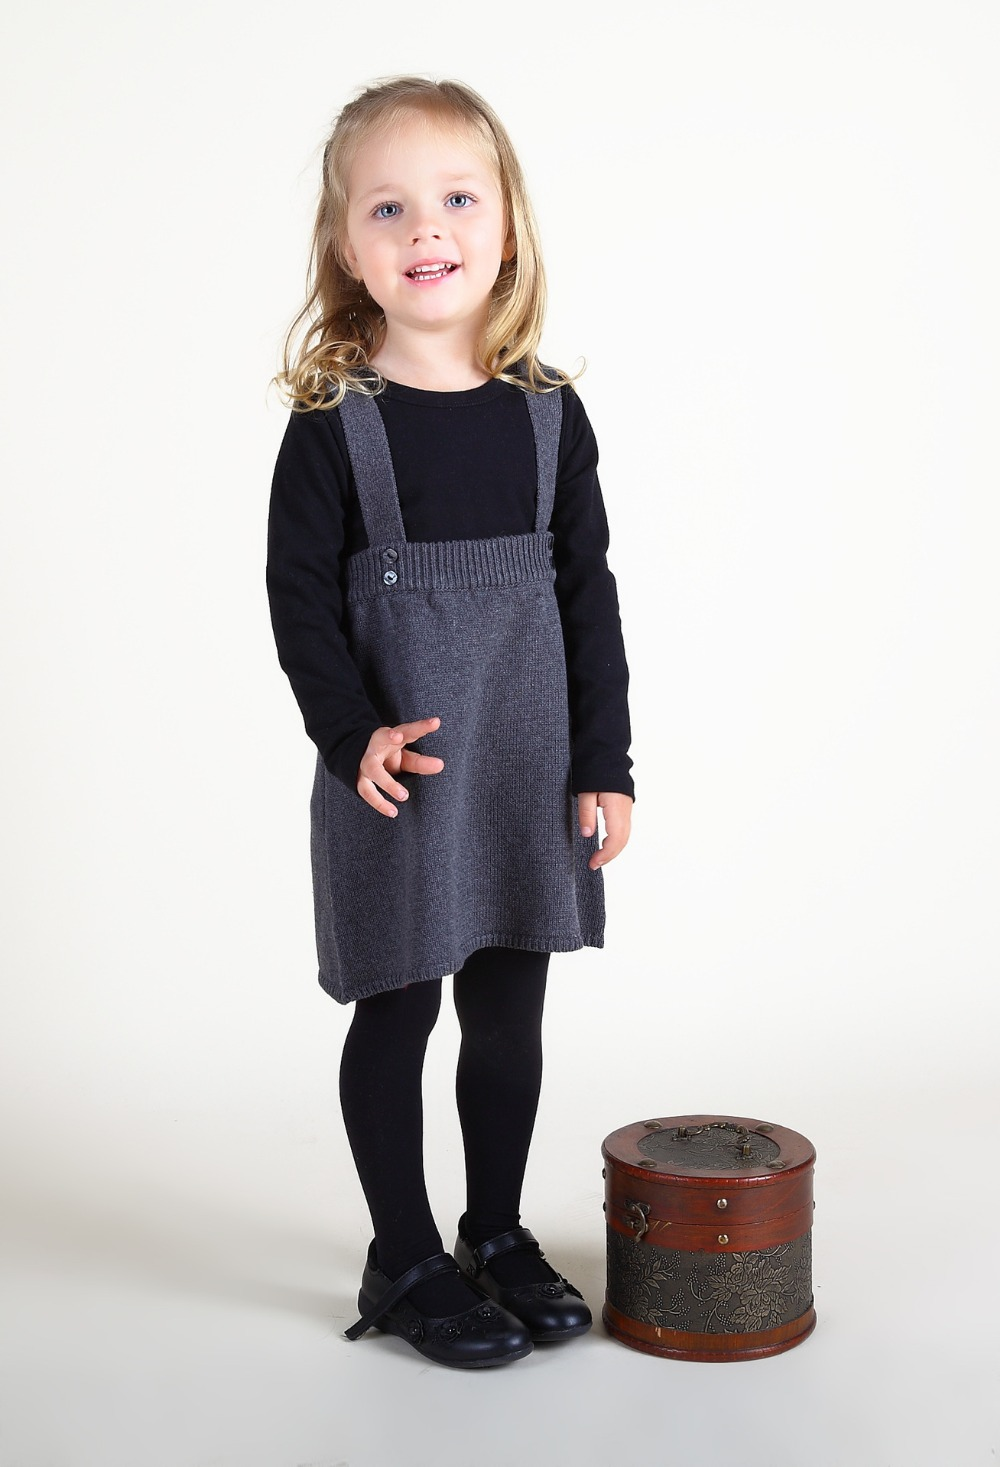 Overalls for Children Sleeveless Jumpsuits Dress Spring Kids Girls Suspenders Dresses Autumn Knitting Pattern Toddlers Costumes kacakid spring new children s sweet girls dresses baby girls dress knitted suspenders baby sleeveless dress